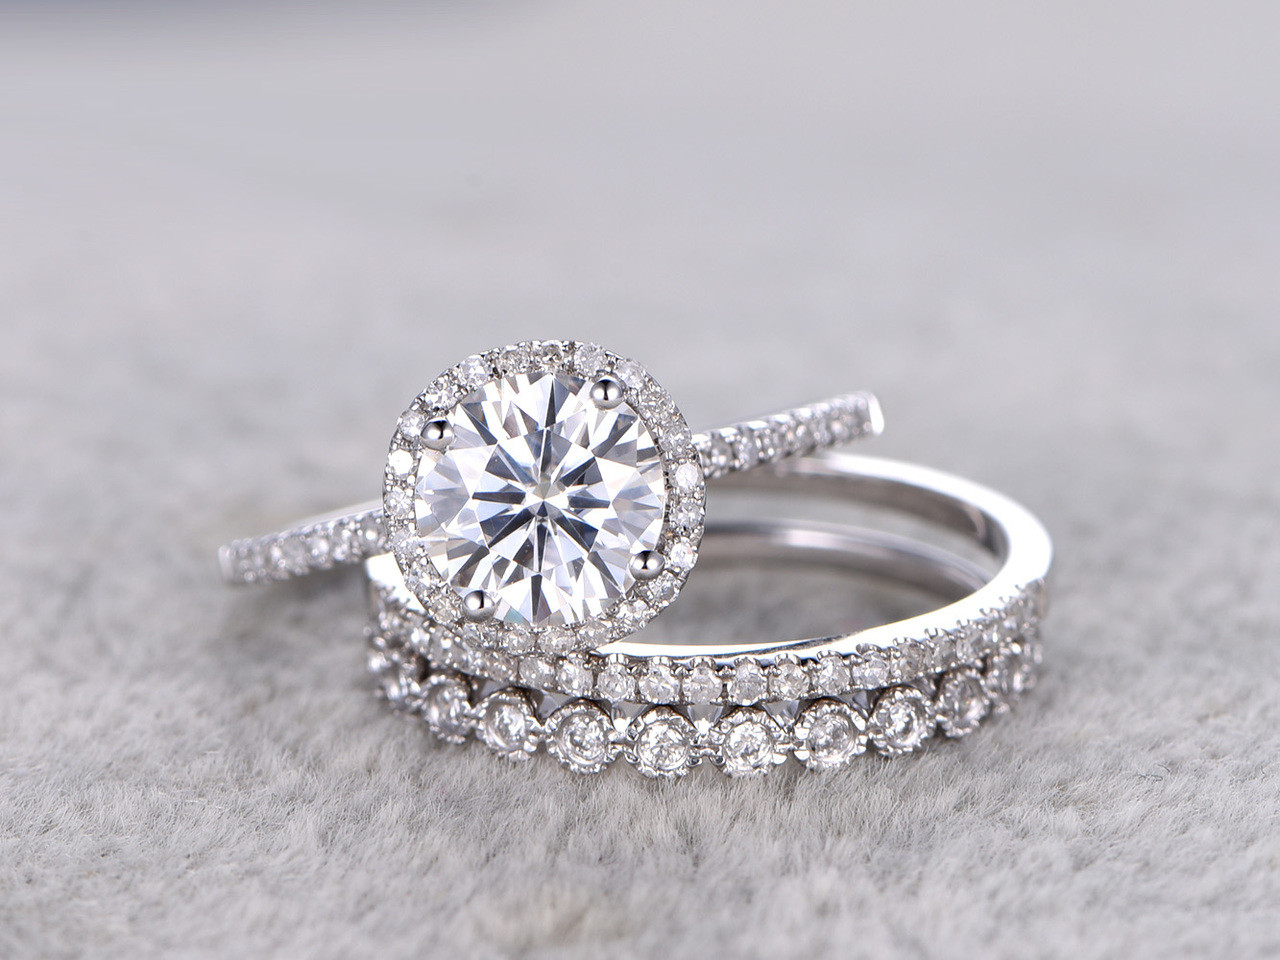 solitaire of engagement ring wedding bands moissanite luxury